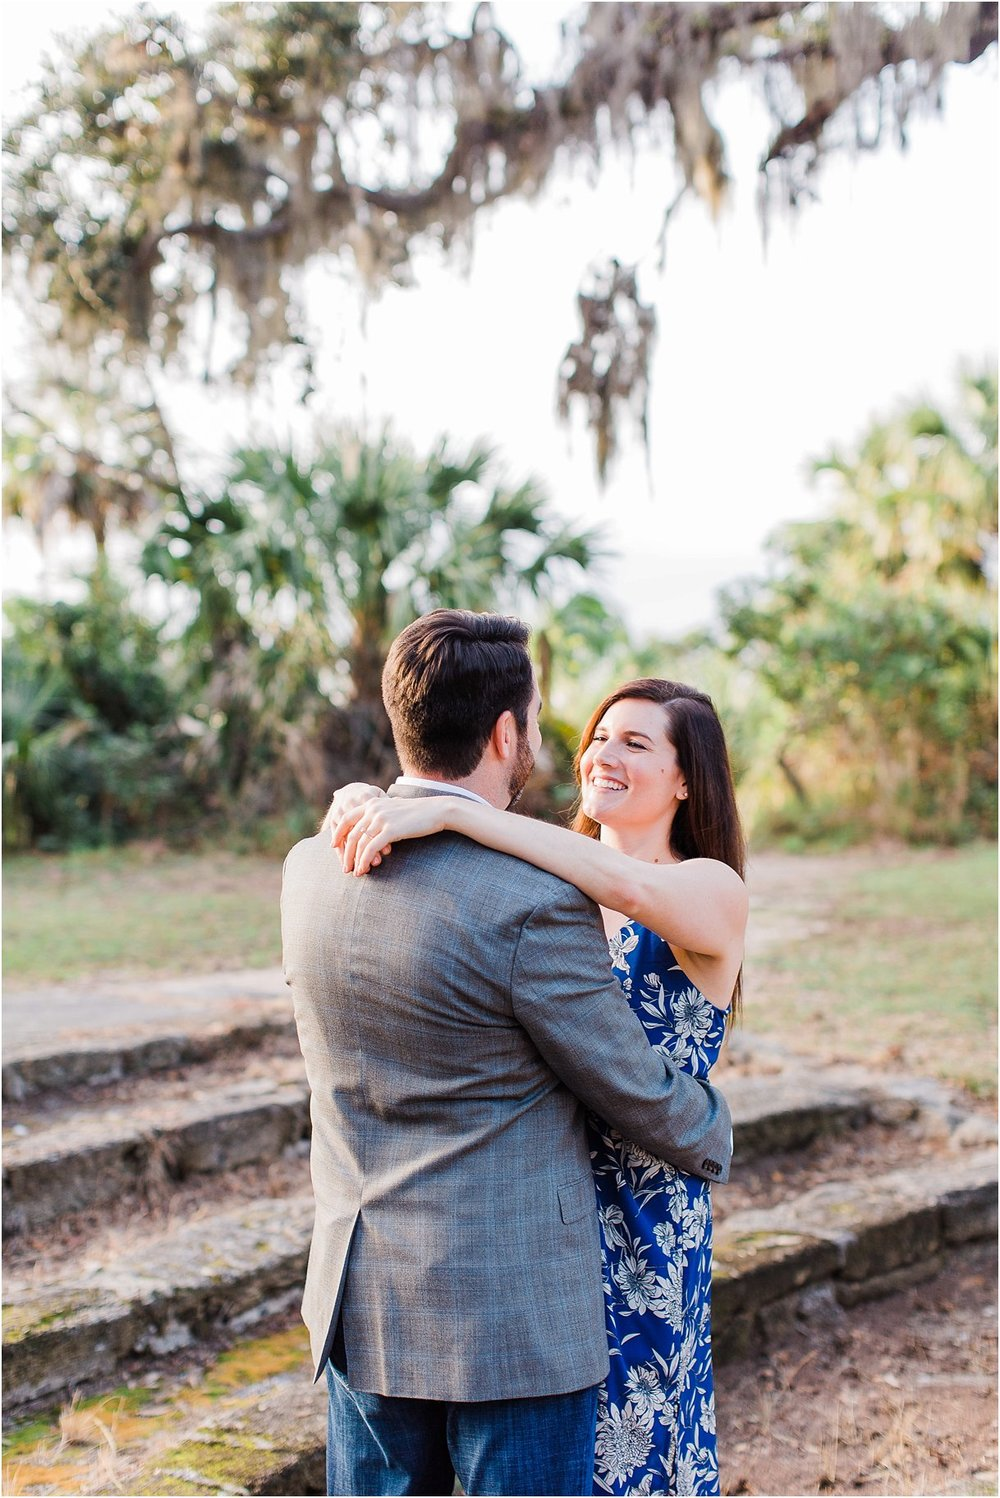 Tomoka Park Ormond Beach Florida Engagement Session Orlando Wedding Photographer PSJ Photography14.jpg